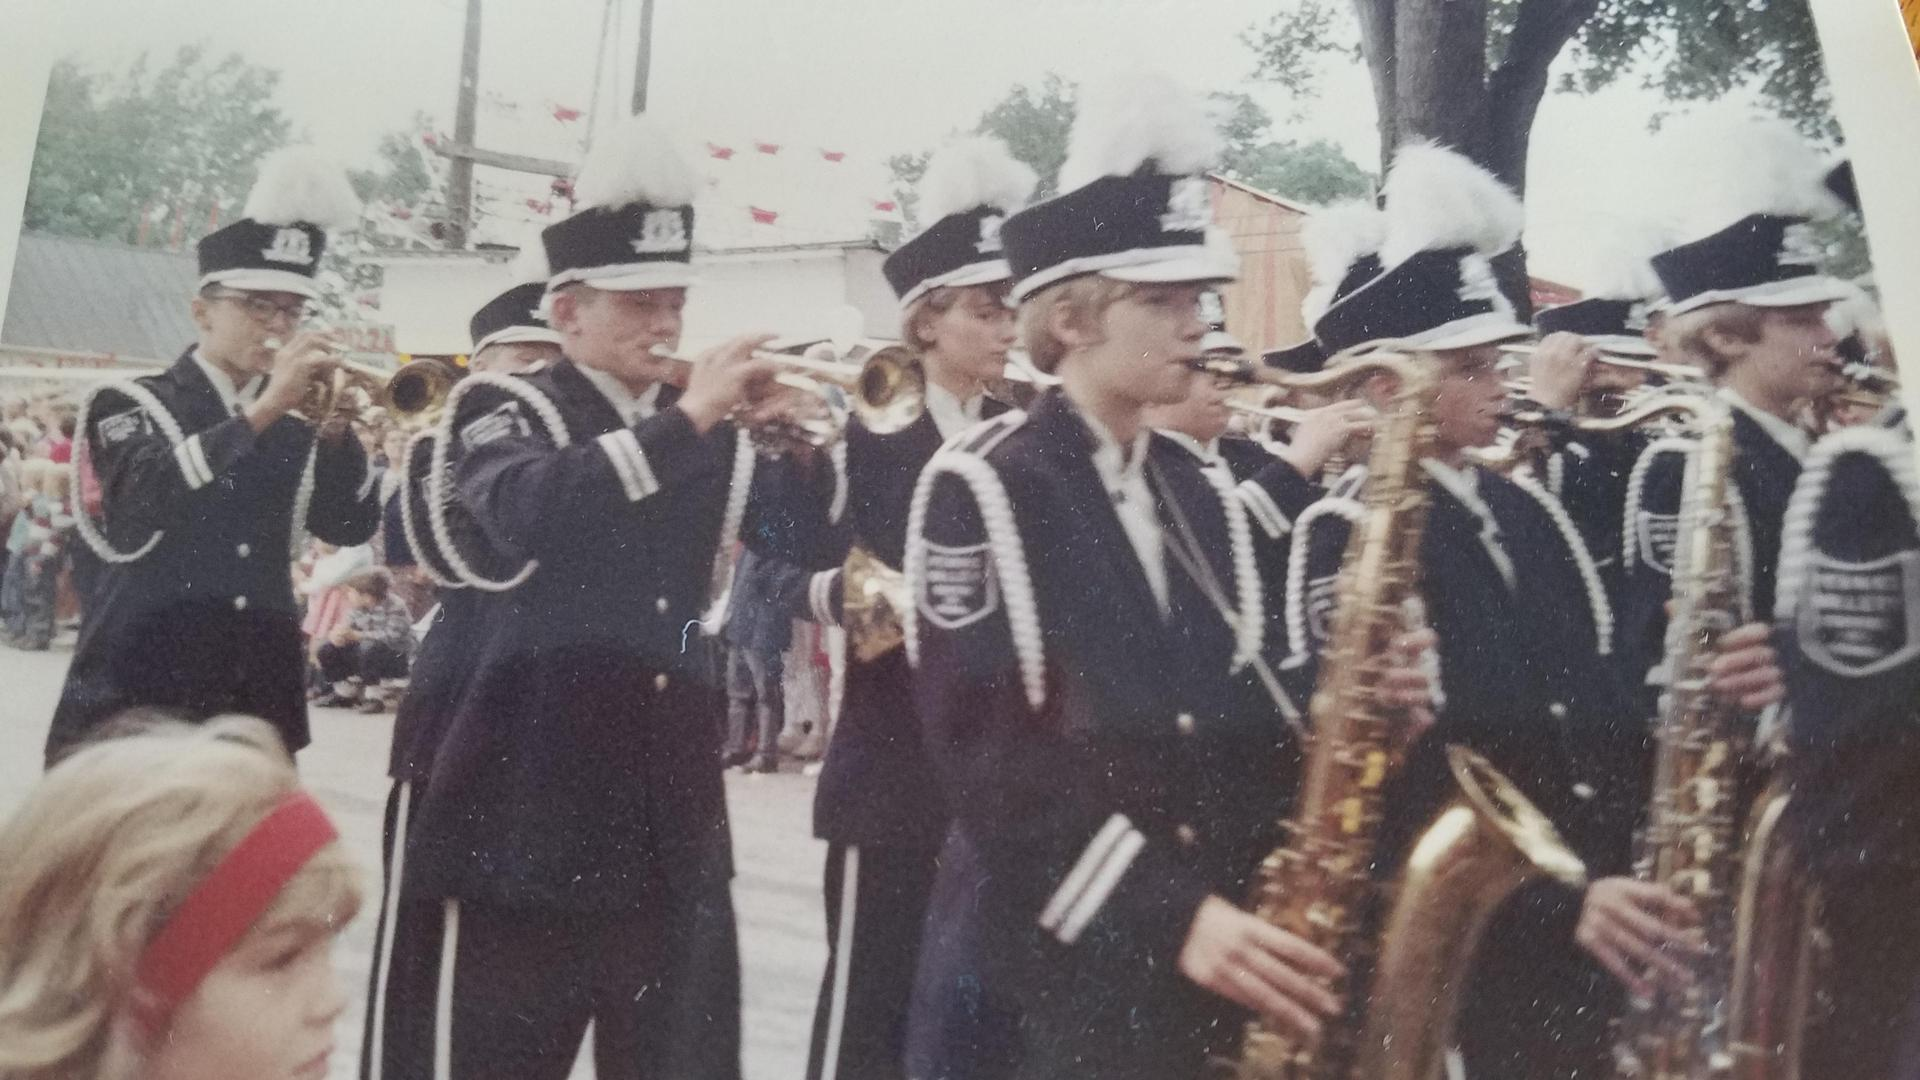 Penns Valley marching band 1967 Grange Fair Parade